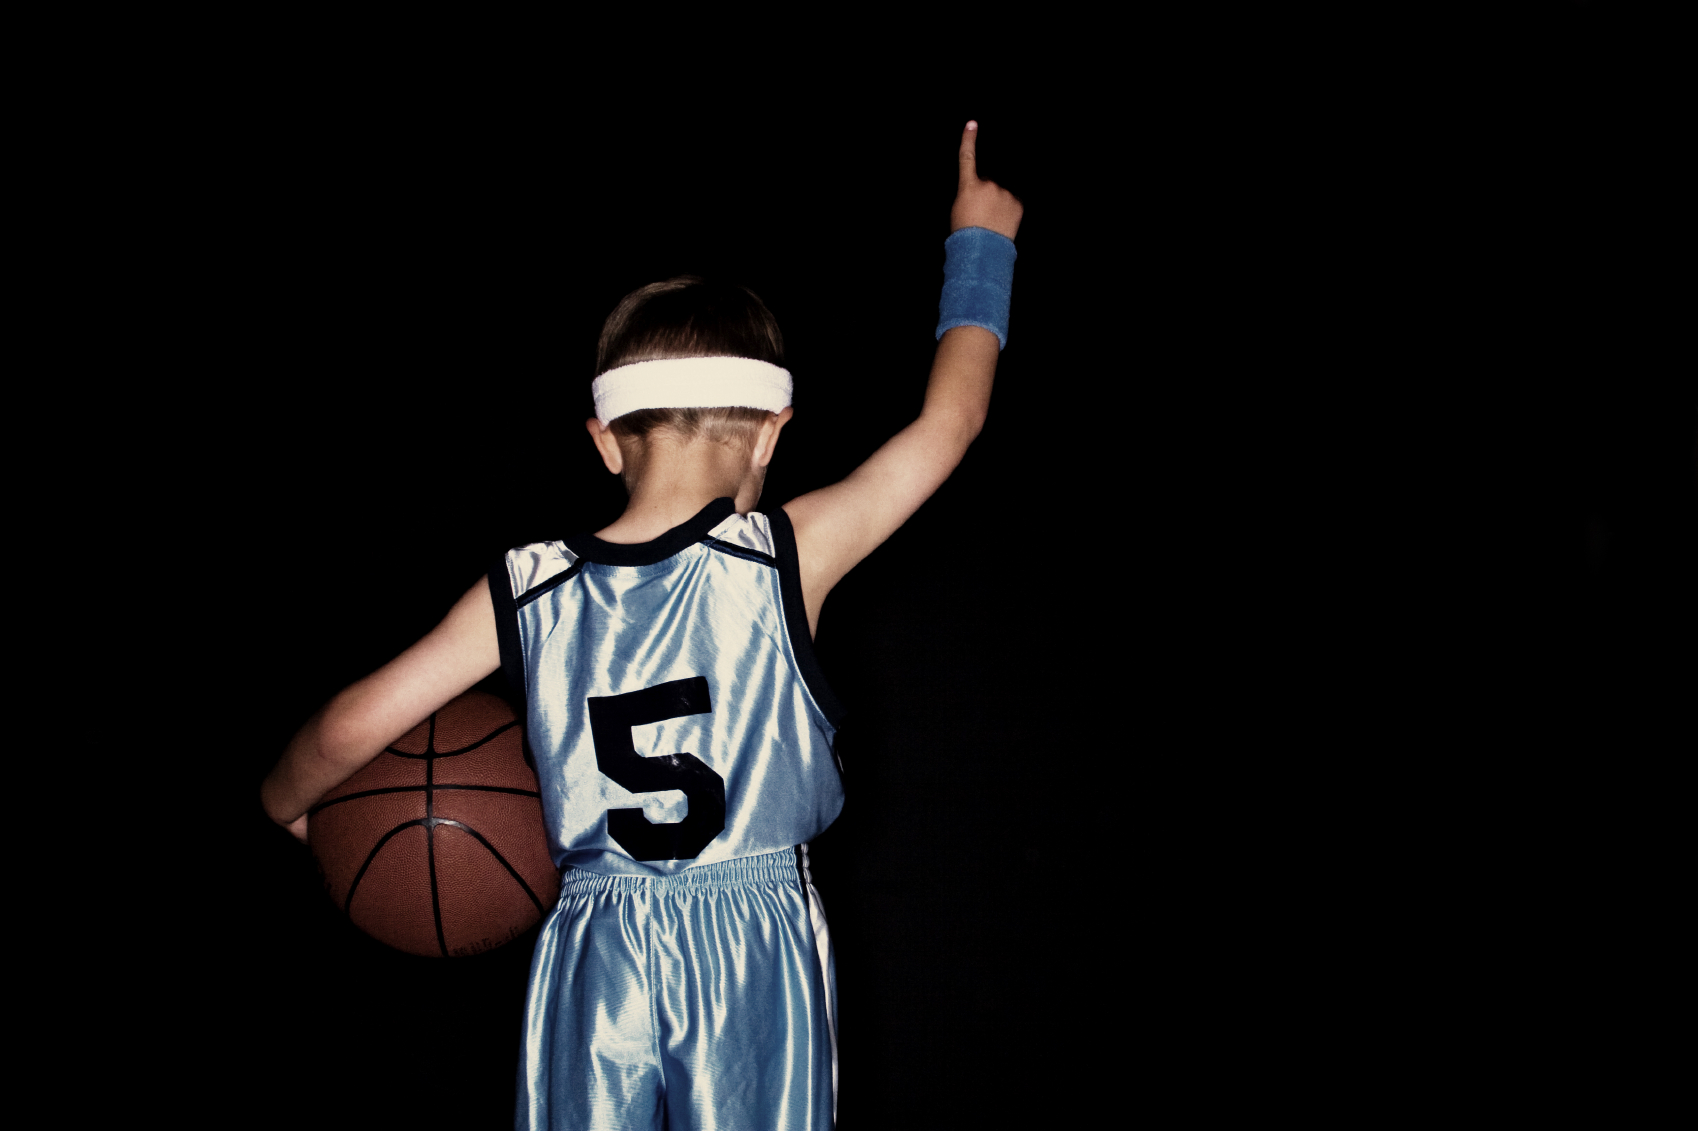 Boy in basketball gear holding a basketball and pointing his finger in the air